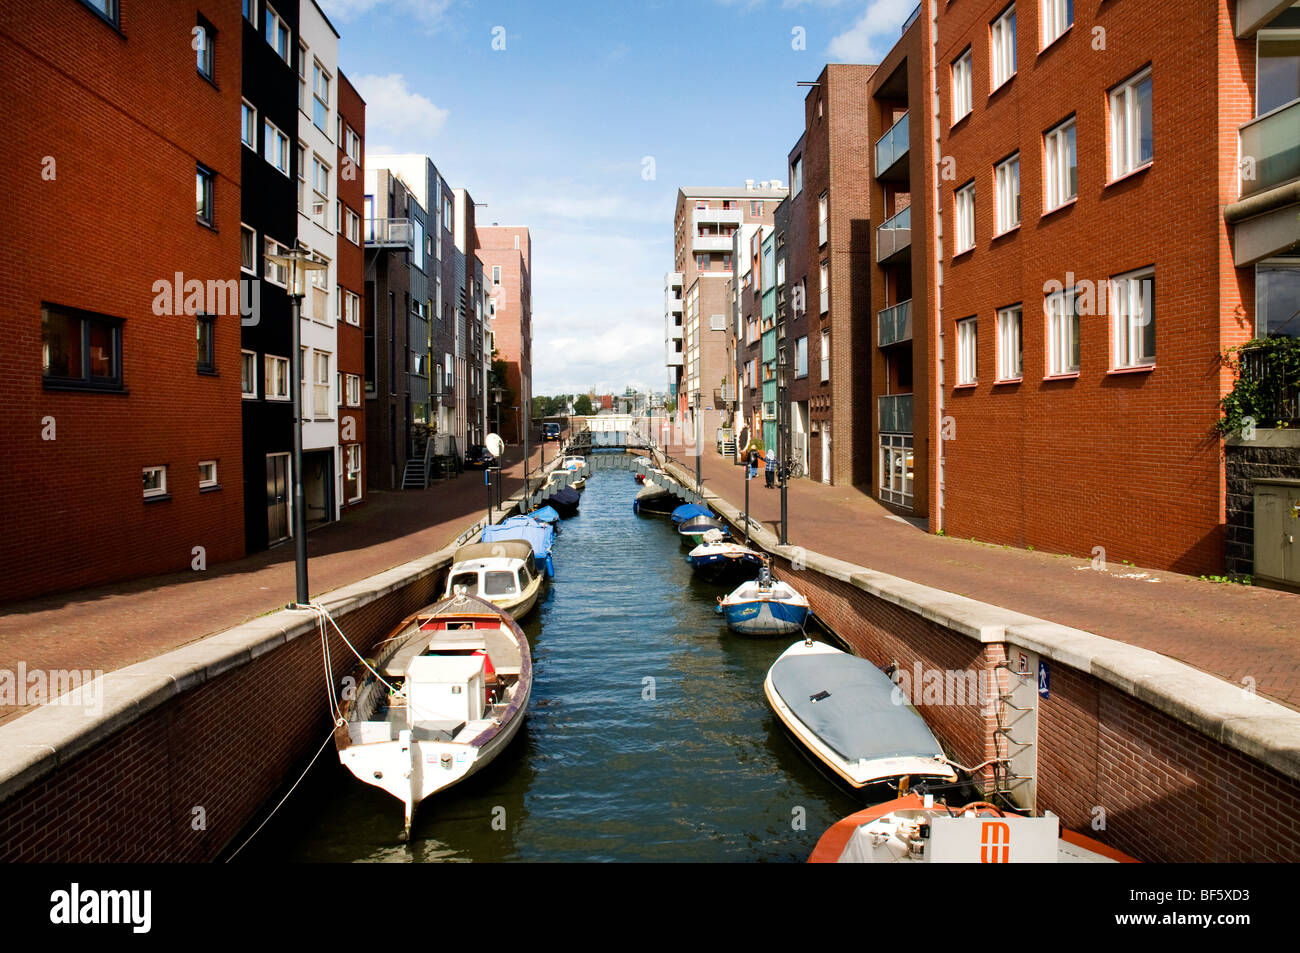 Canal in Java Eiland, Amsterdam, Holland, Netherlands - Stock Image